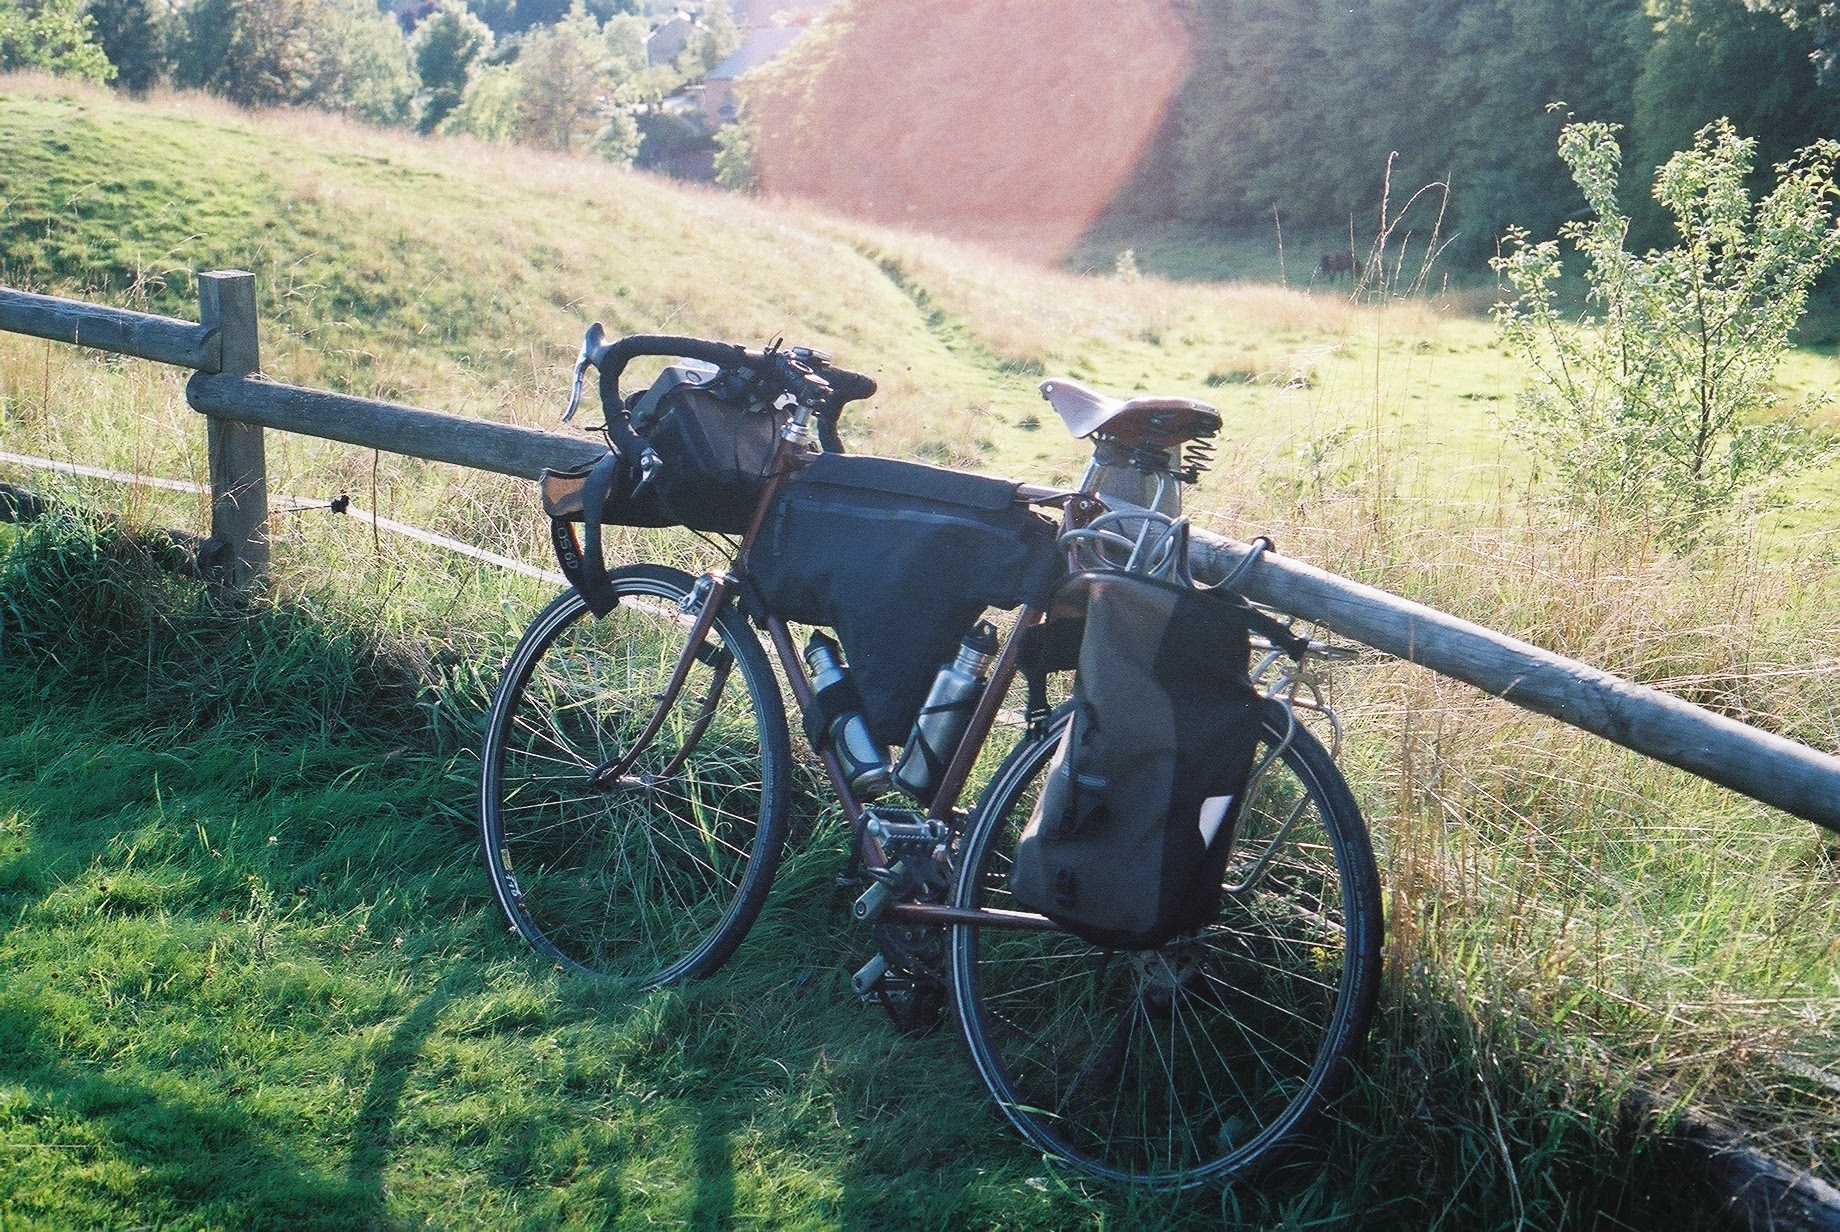 bike, bicycle, raleigh, raleigh magnum, canon, canon ae-1, film camera, 35mm, shoot film, film is not dead, travel, travel blog, bikepacking, cycle touring, exploration, adventure, bicycle touring apocalypse